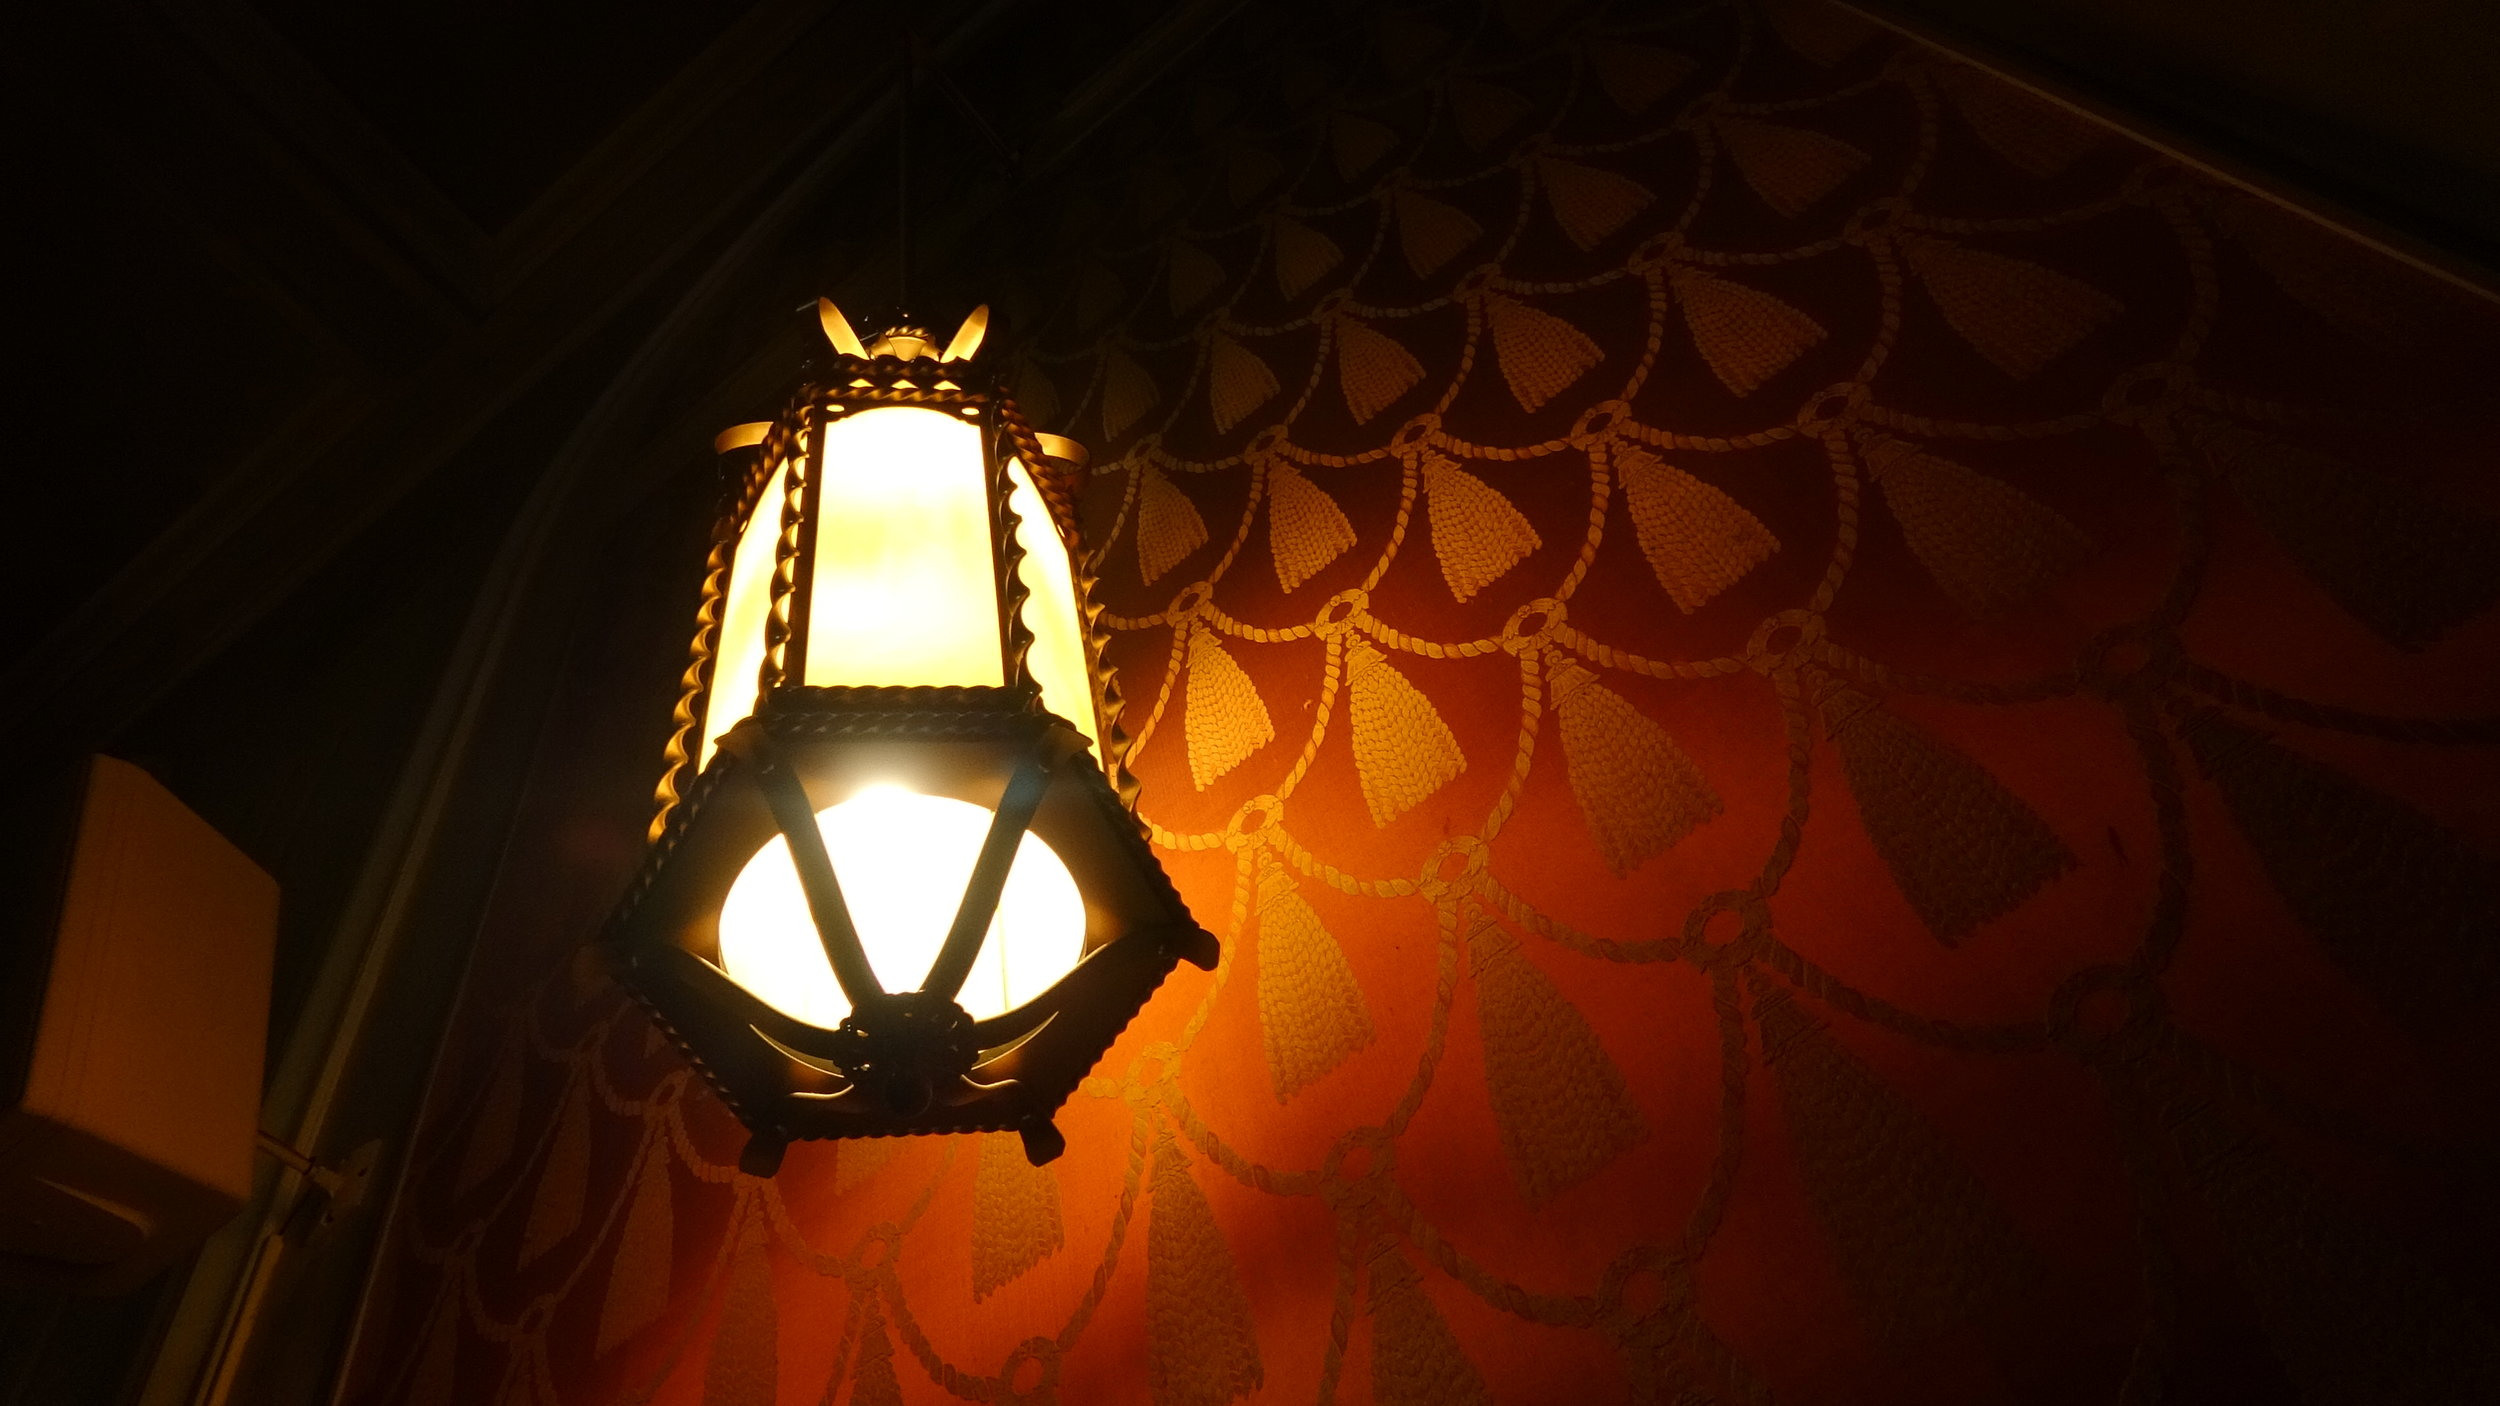 Today you can find new lanterns modeled after the original.